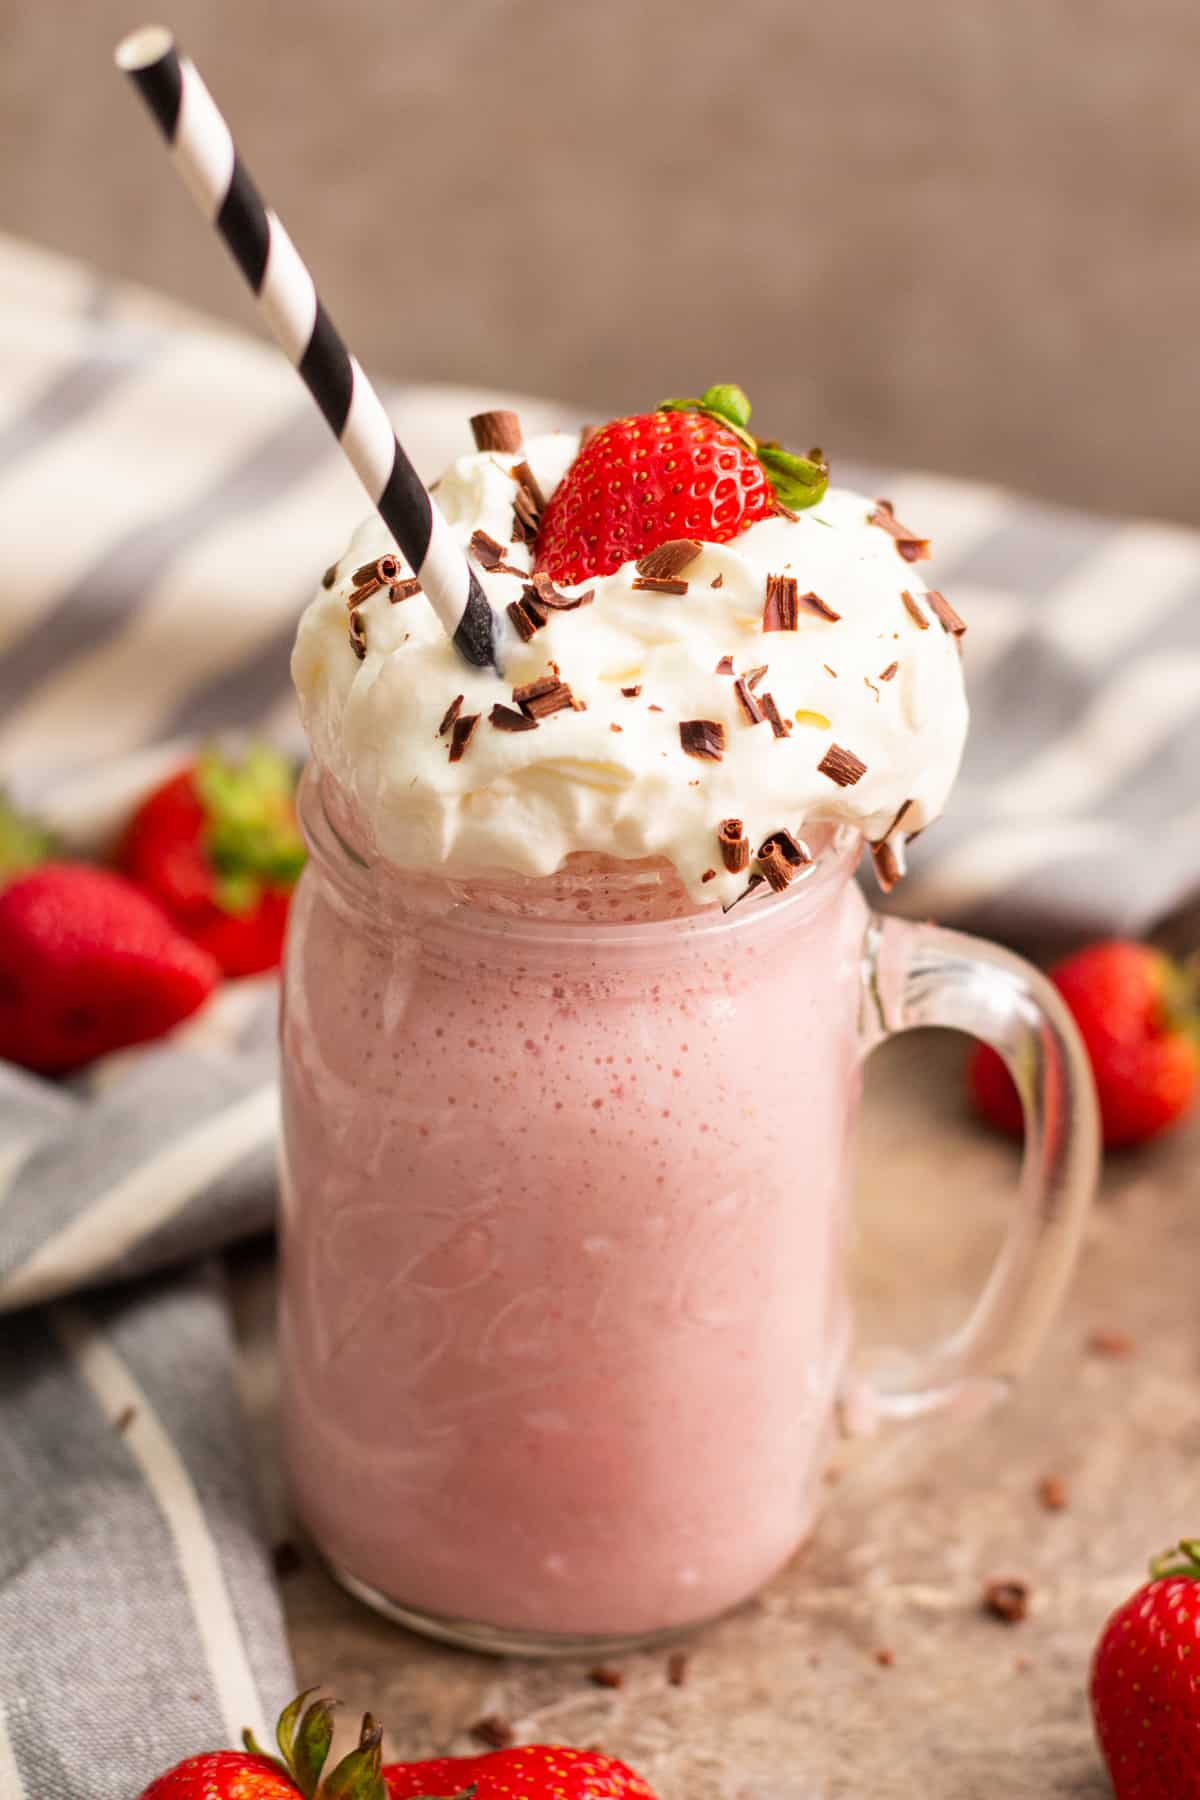 This easy milkshake recipe is perfect for summer topped with fresh strawberries.